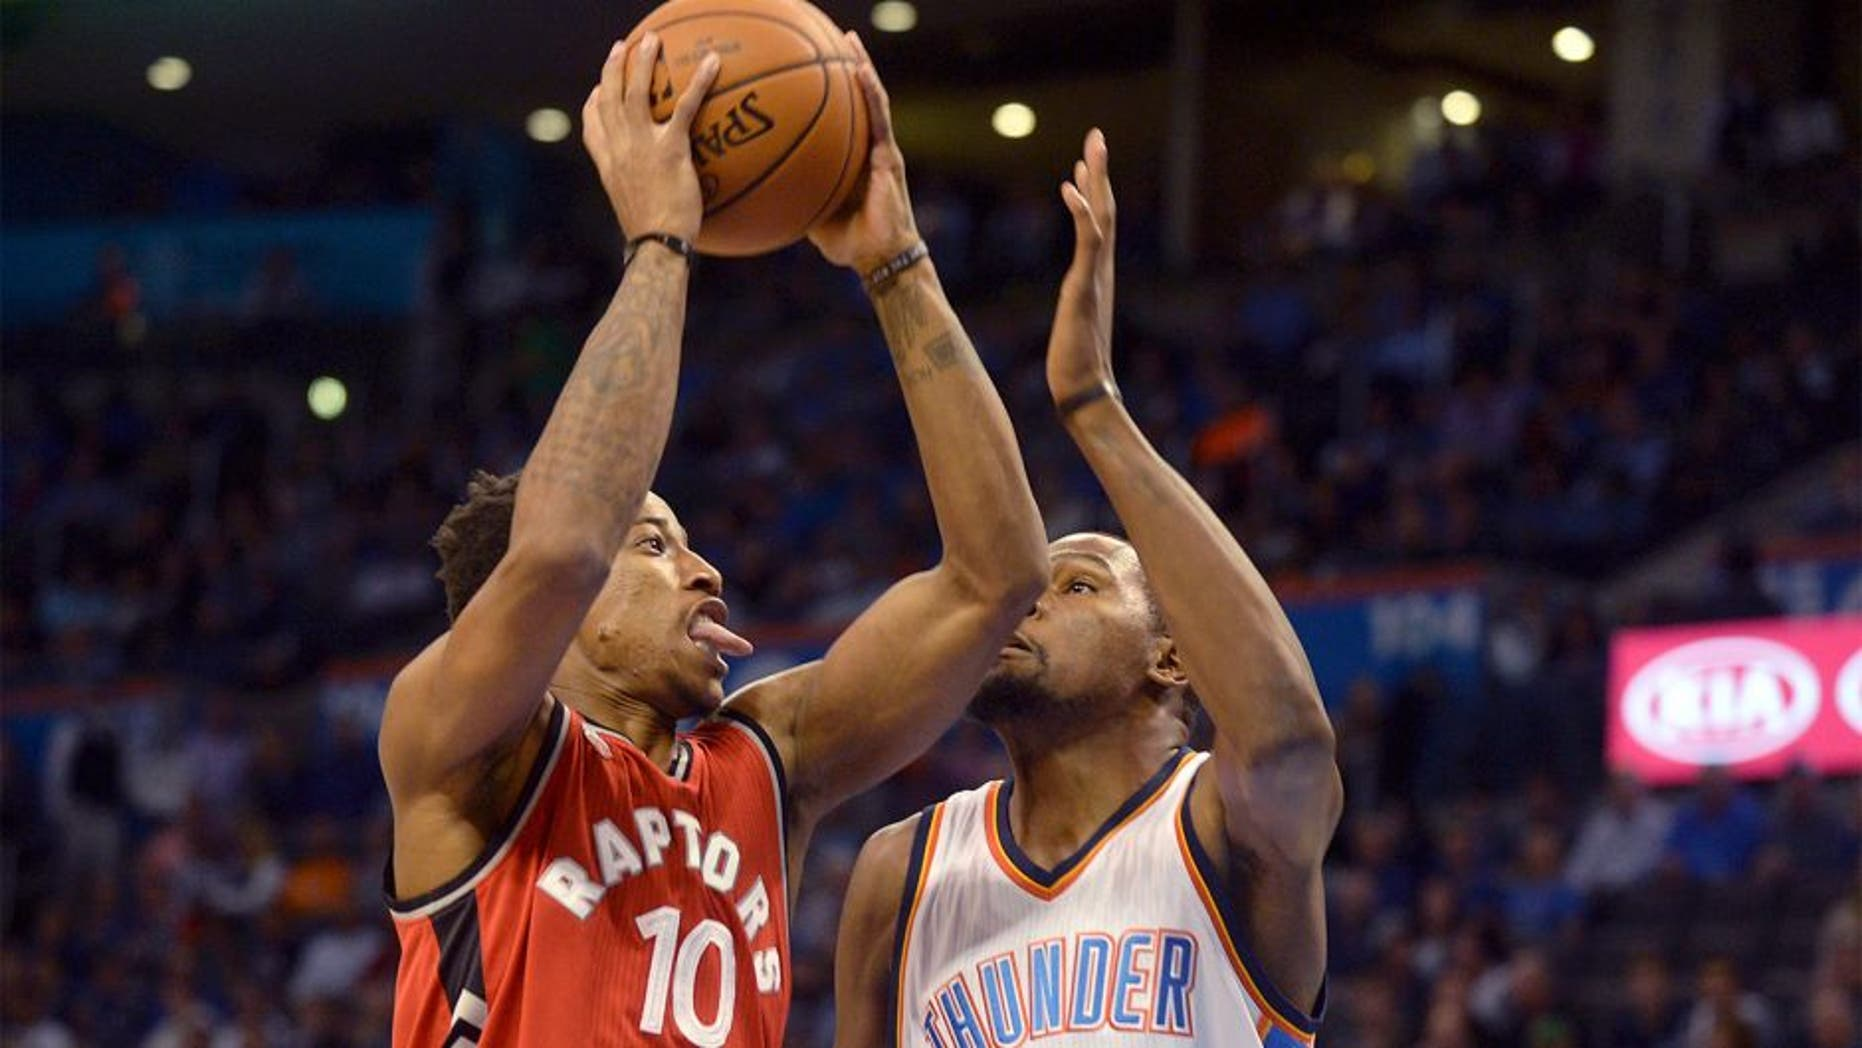 Nov 4, 2015; Oklahoma City, OK, USA; Toronto Raptors guard DeMar DeRozan (10) attempts a shot against Oklahoma City Thunder forward Kevin Durant (35) during the first quarter at Chesapeake Energy Arena. Mandatory Credit: Mark D. Smith-USA TODAY Sports